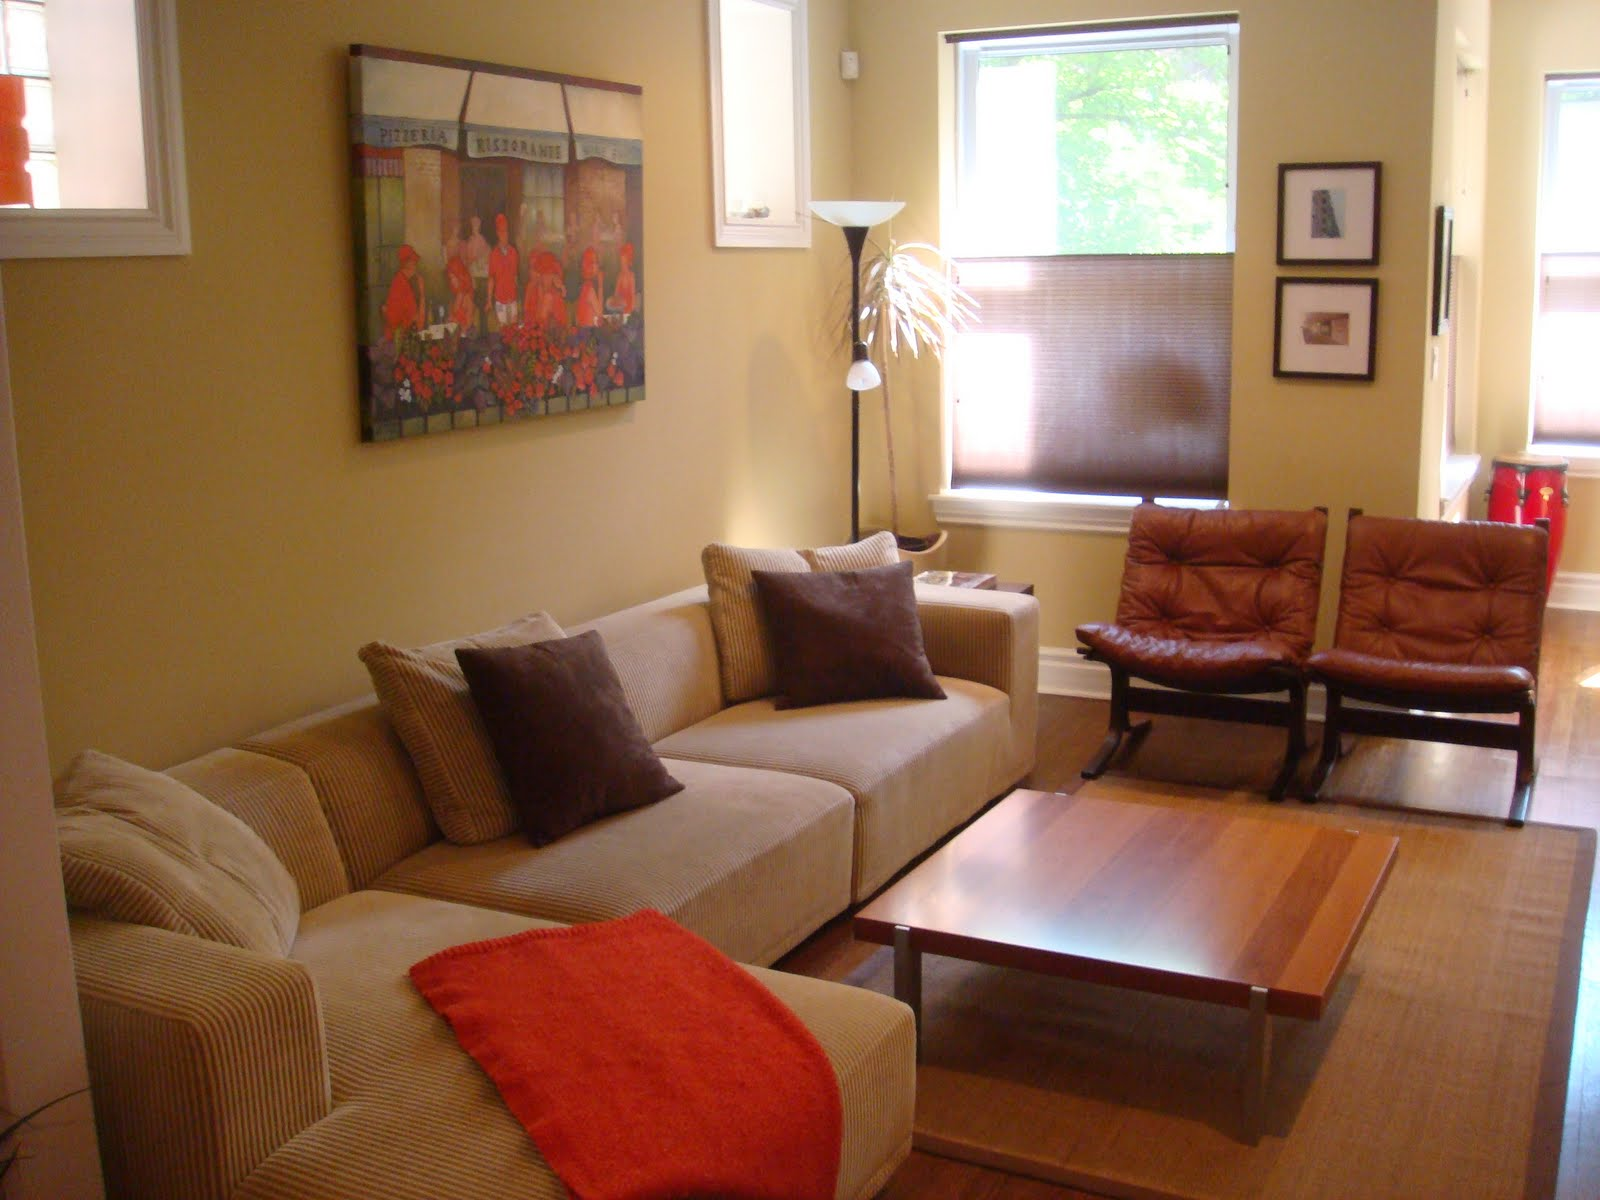 The Chicago Real Estate Local Ravenswood Lincoln Square Duplex Condo For Sale Three Bedrooms